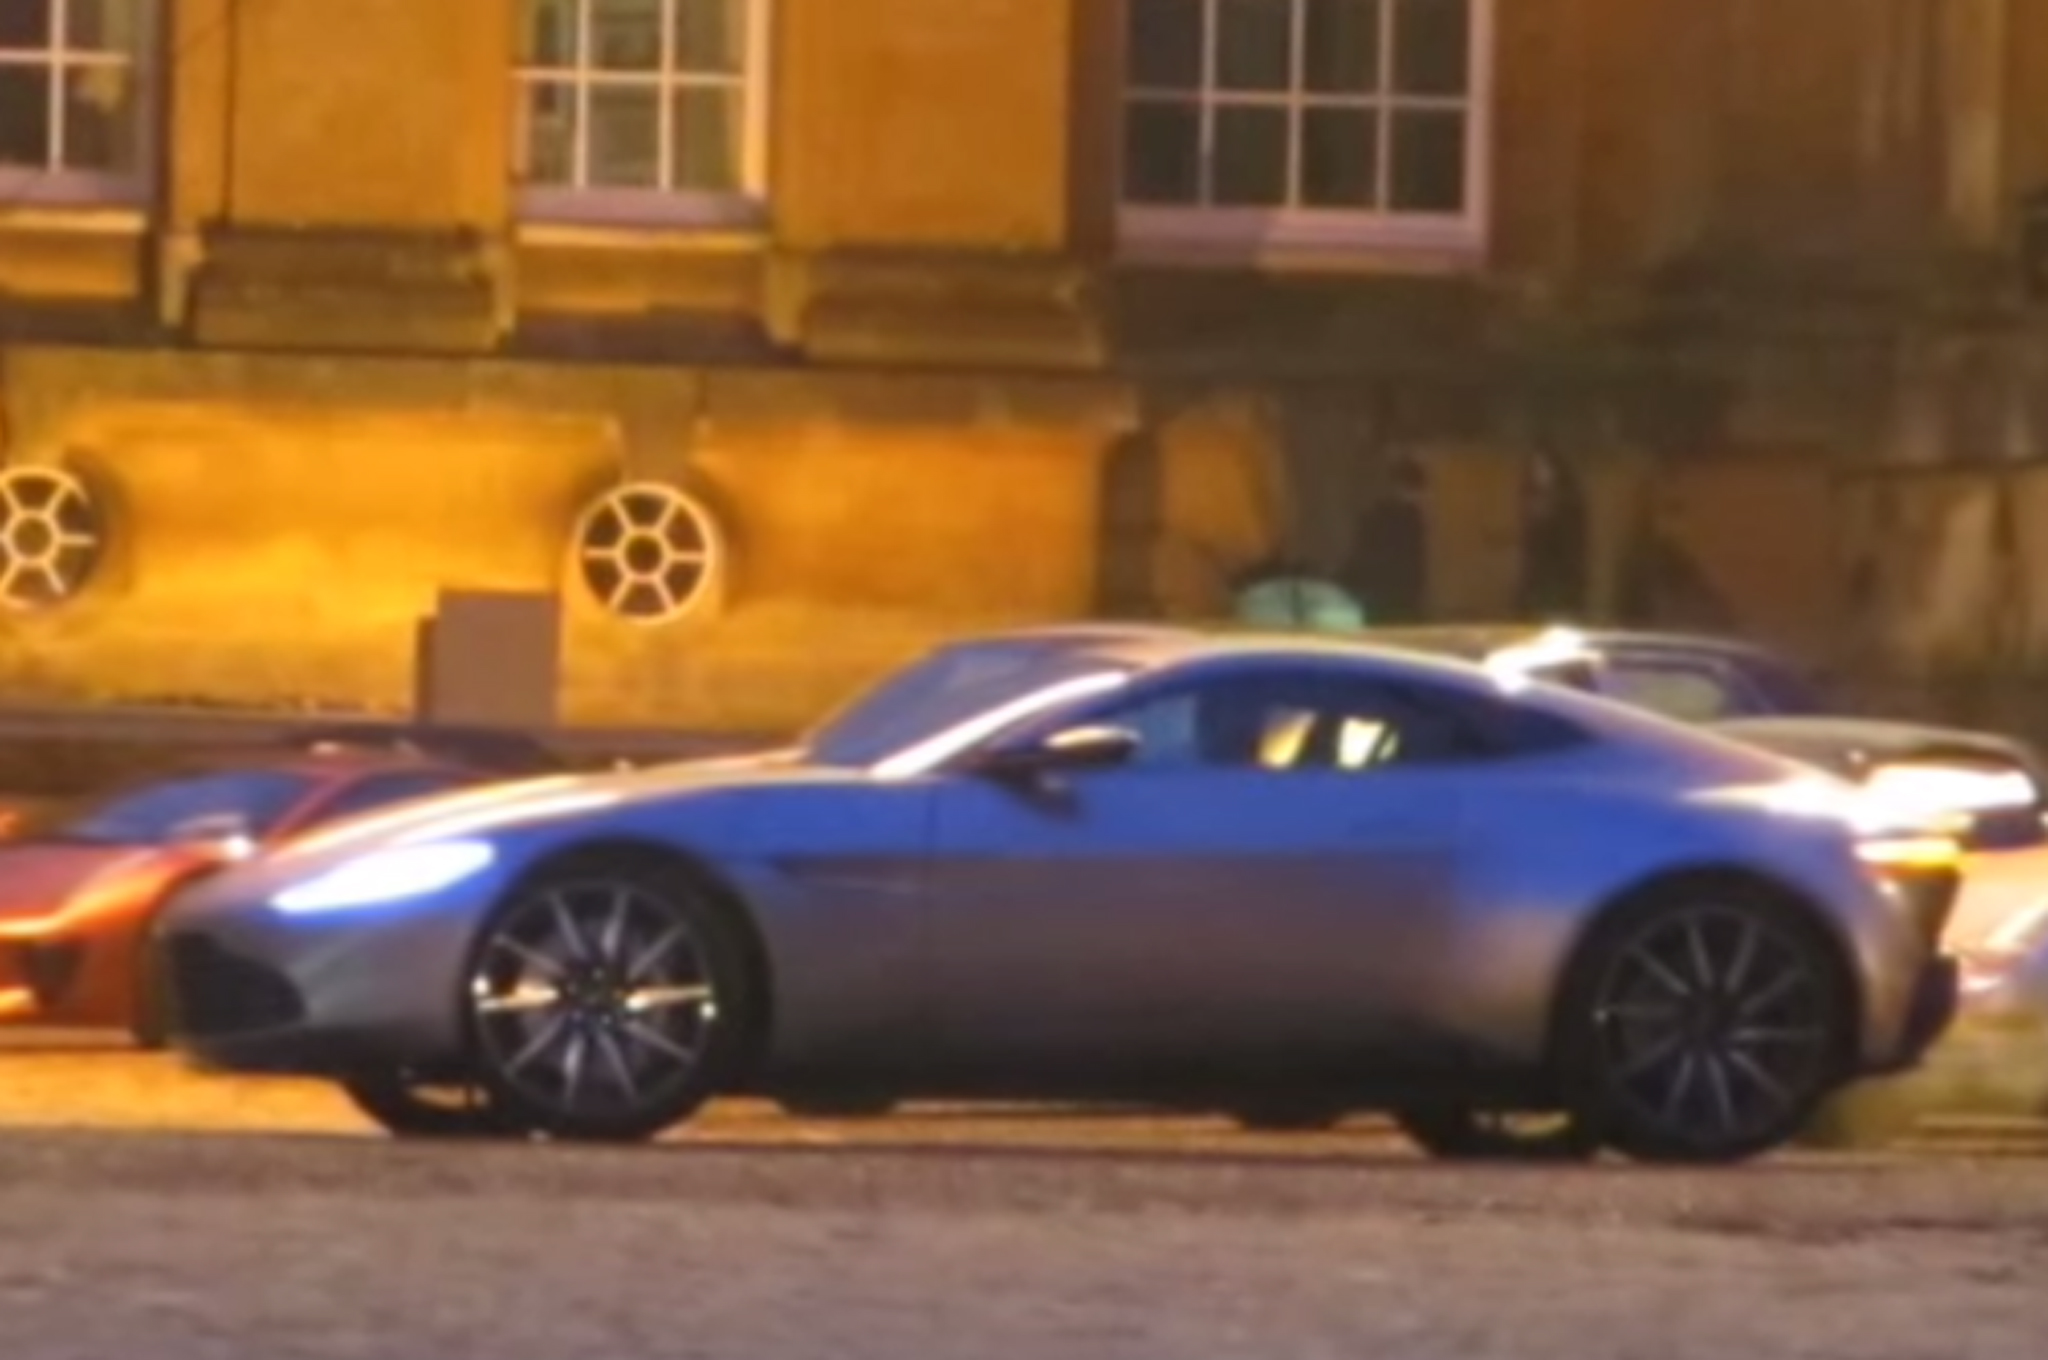 New Video Shows Aston Martin DB10 in Action on James Bond Spectre Set